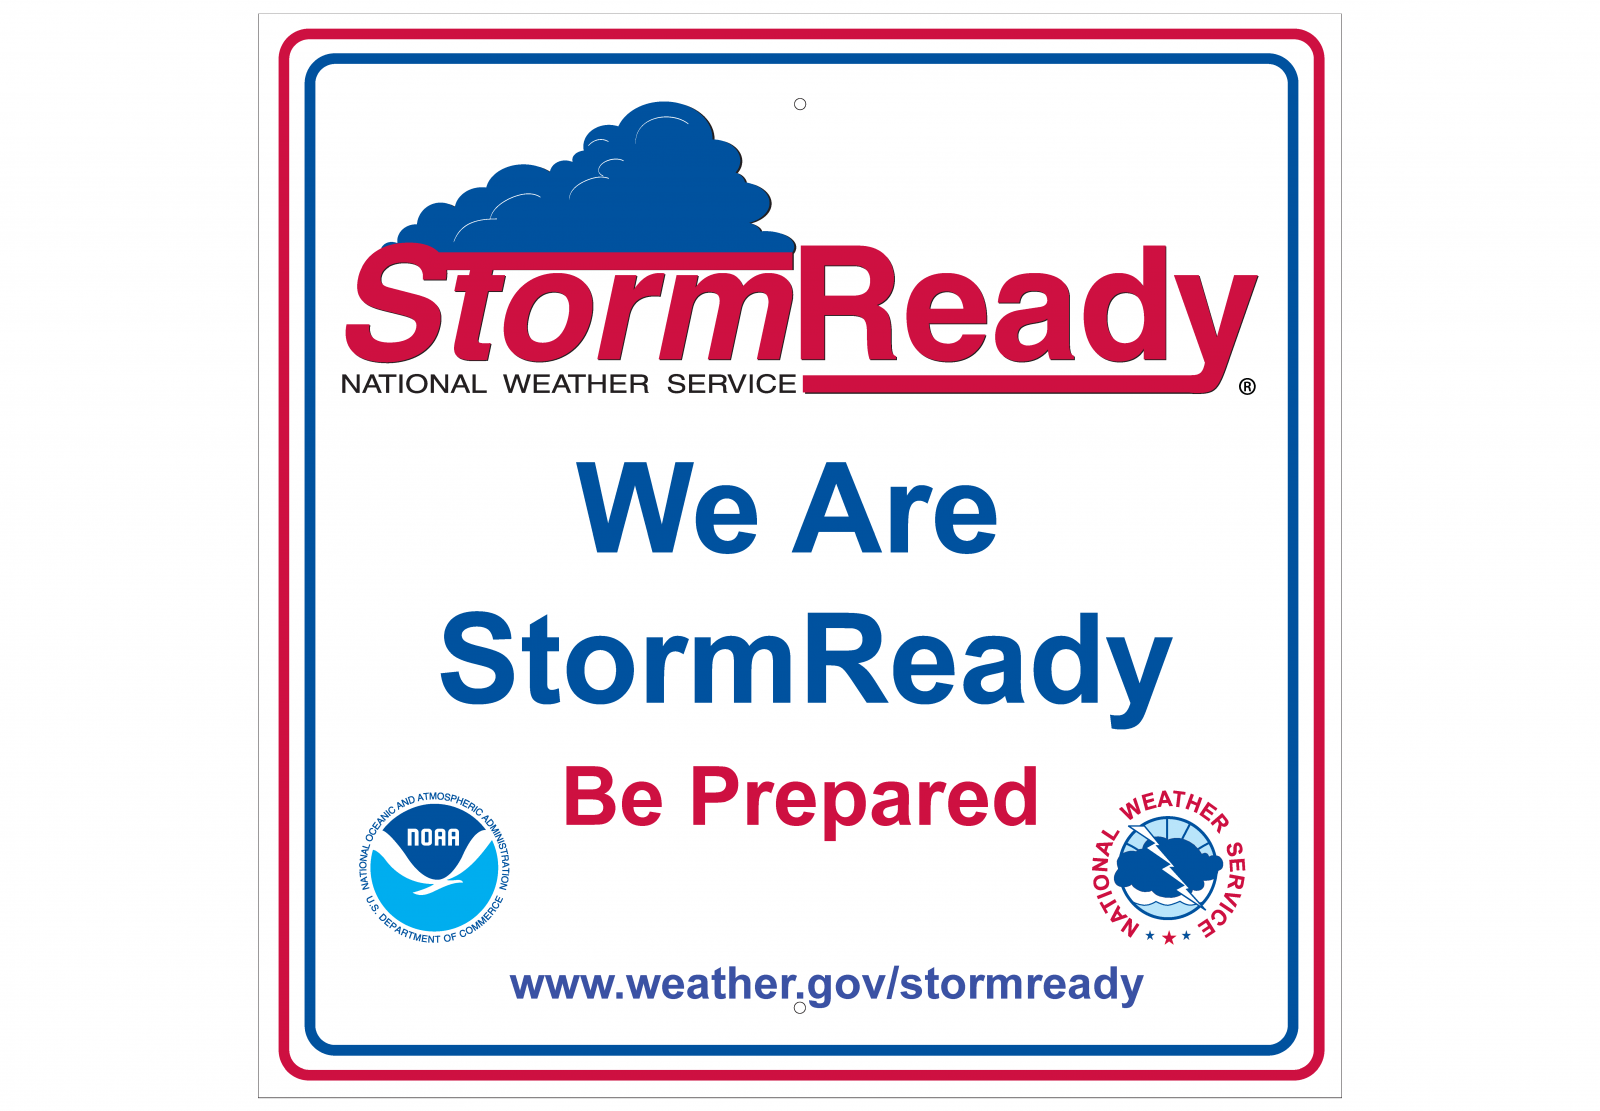 We Are Ready StormReady sign